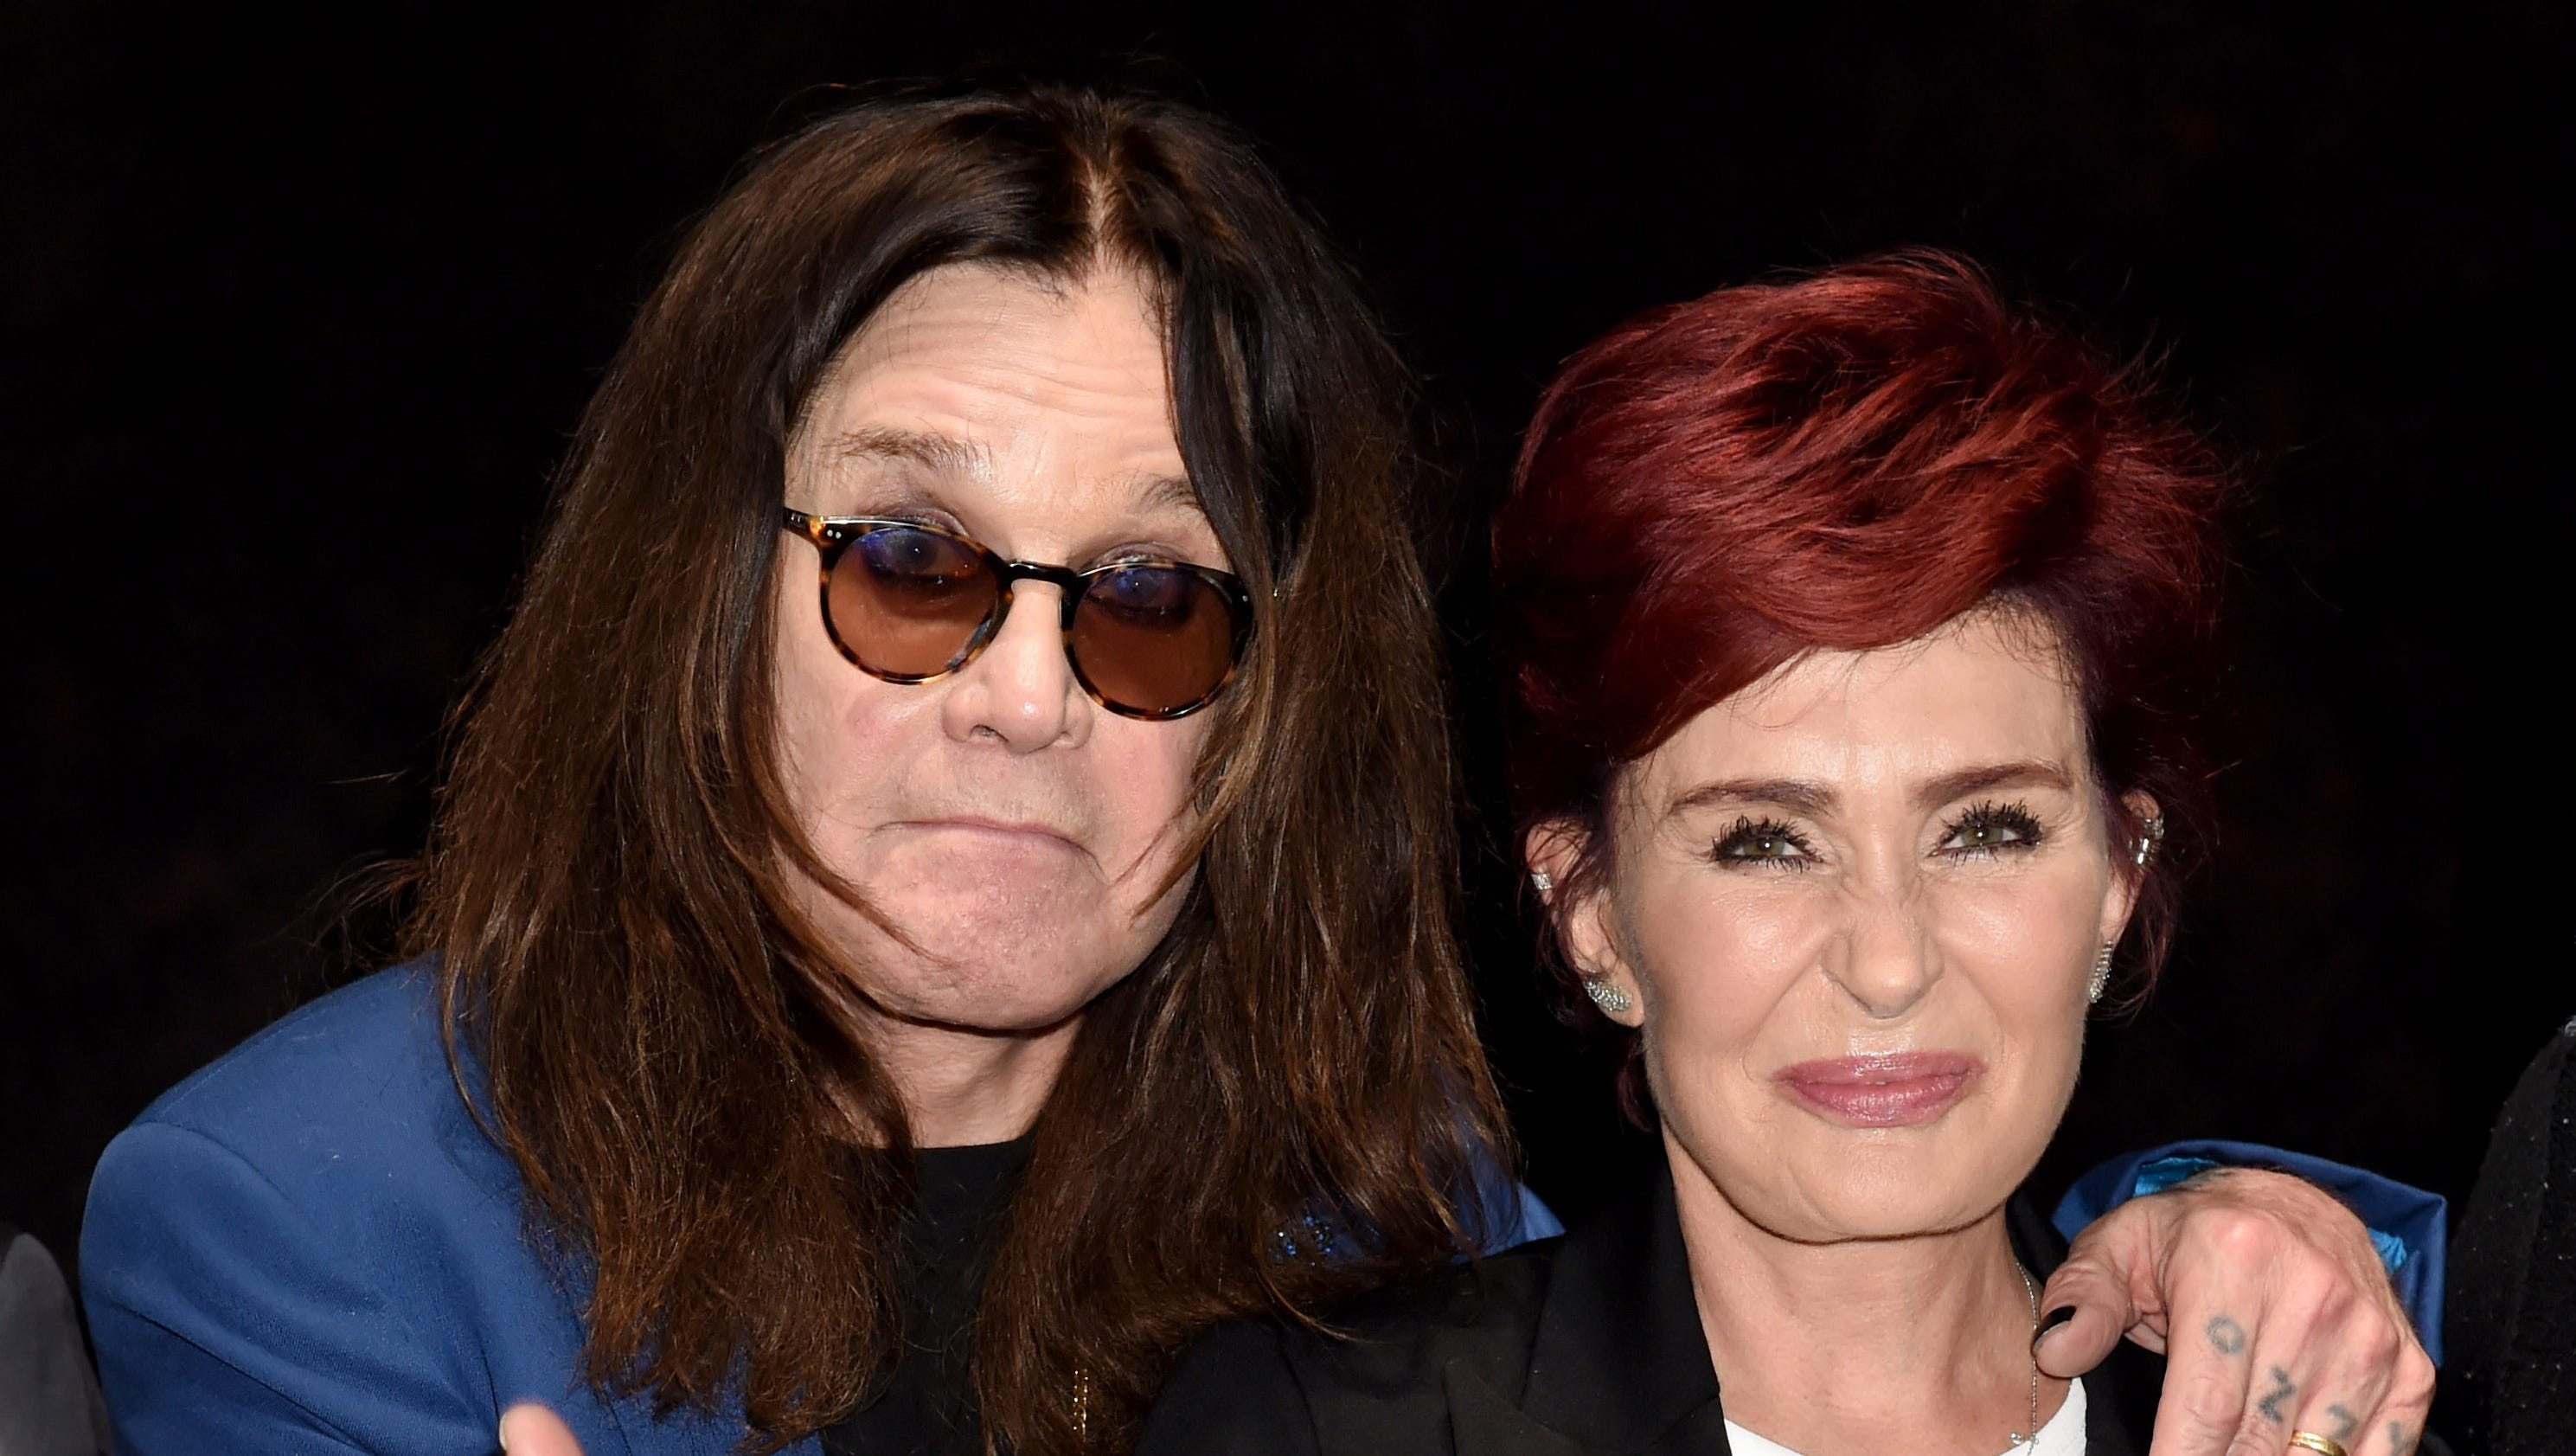 Are Sharon and Ozzy Osbourne reuniting?